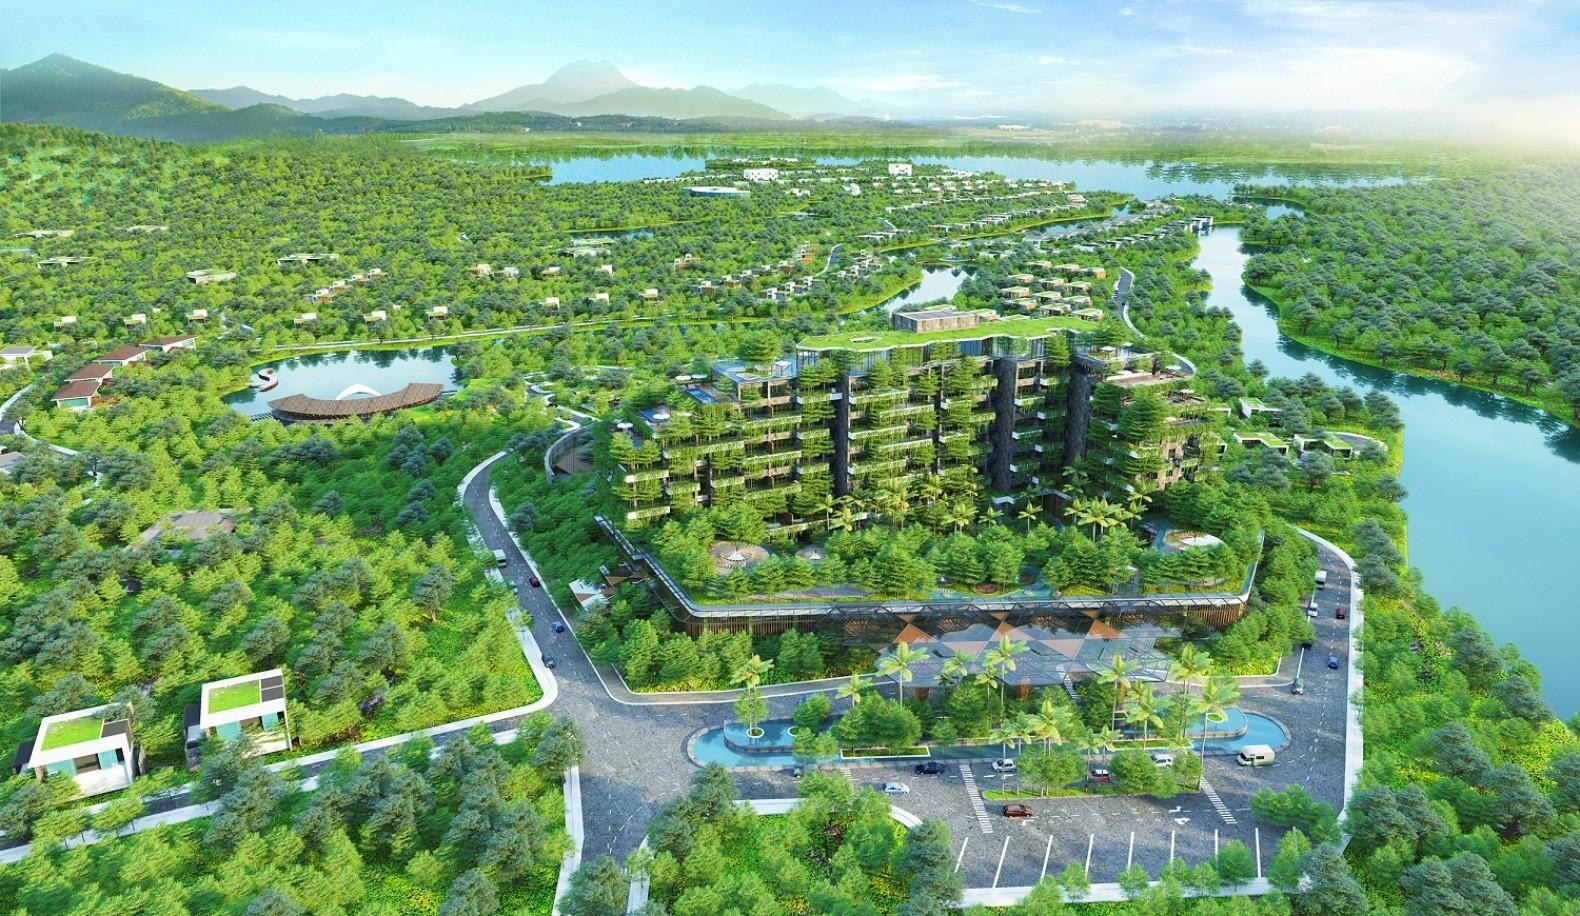 Vietnam Forest Sky Apartment Building Topped